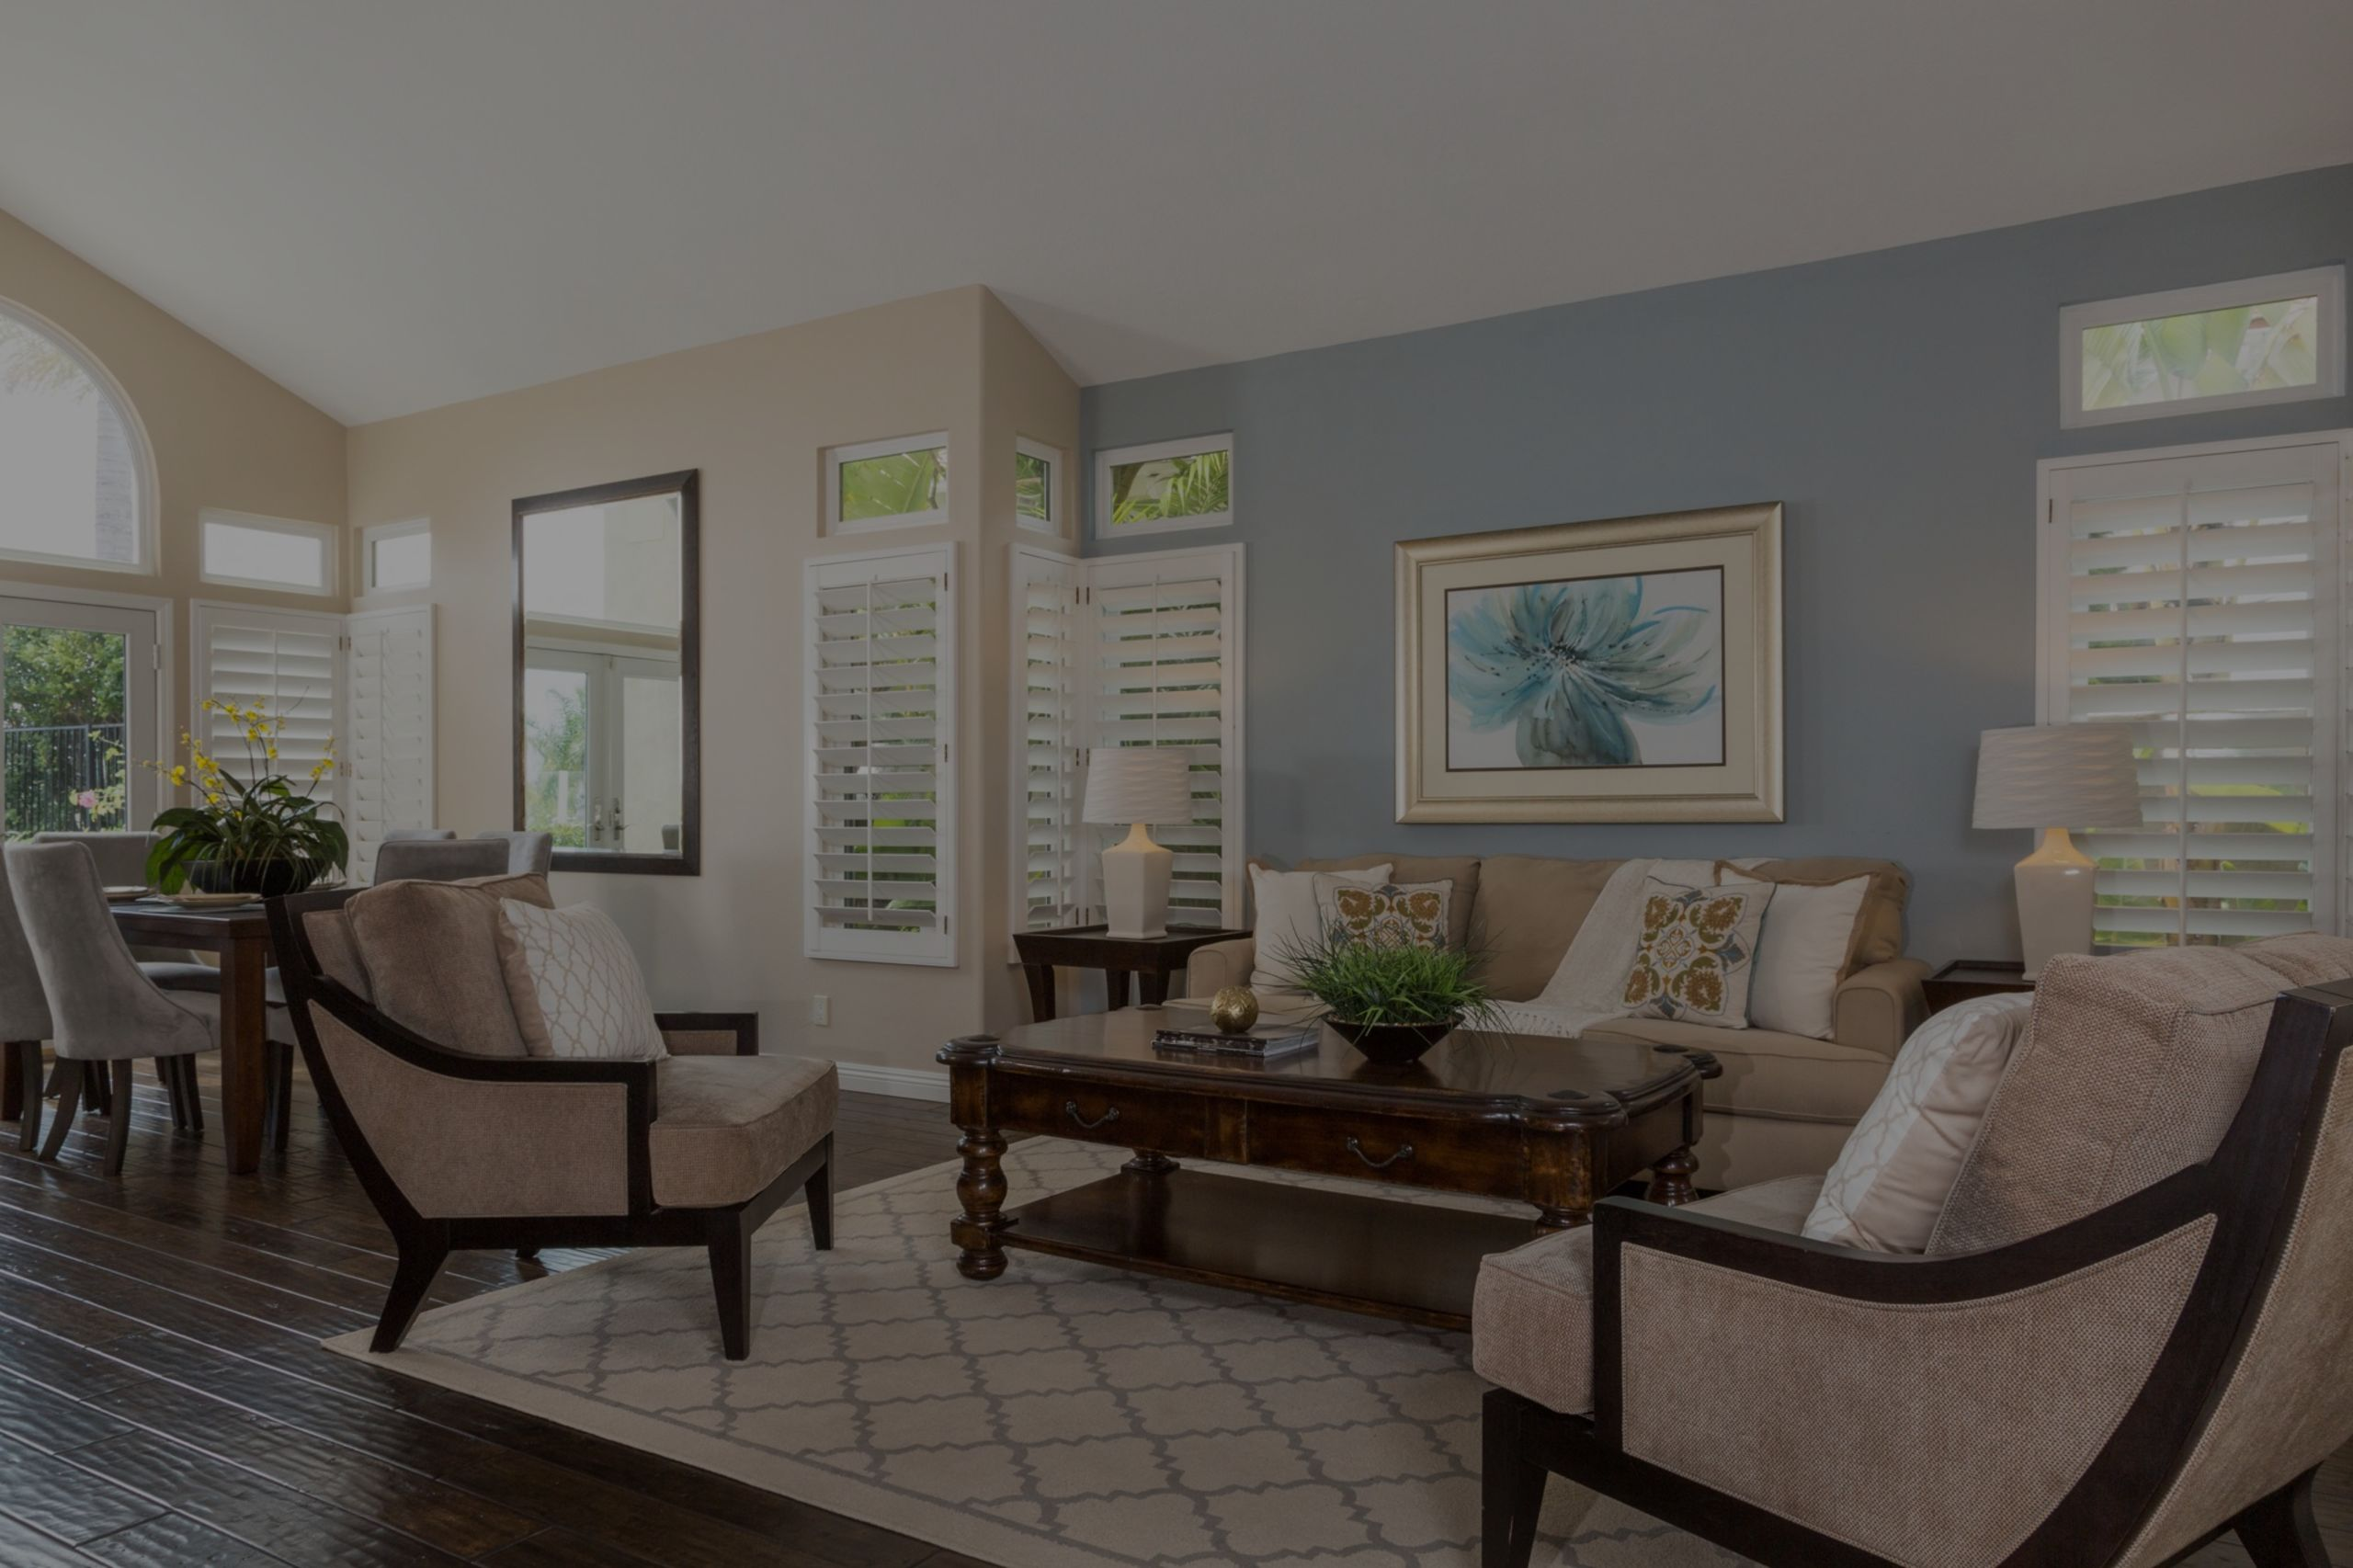 7 Tips for Staging your Home